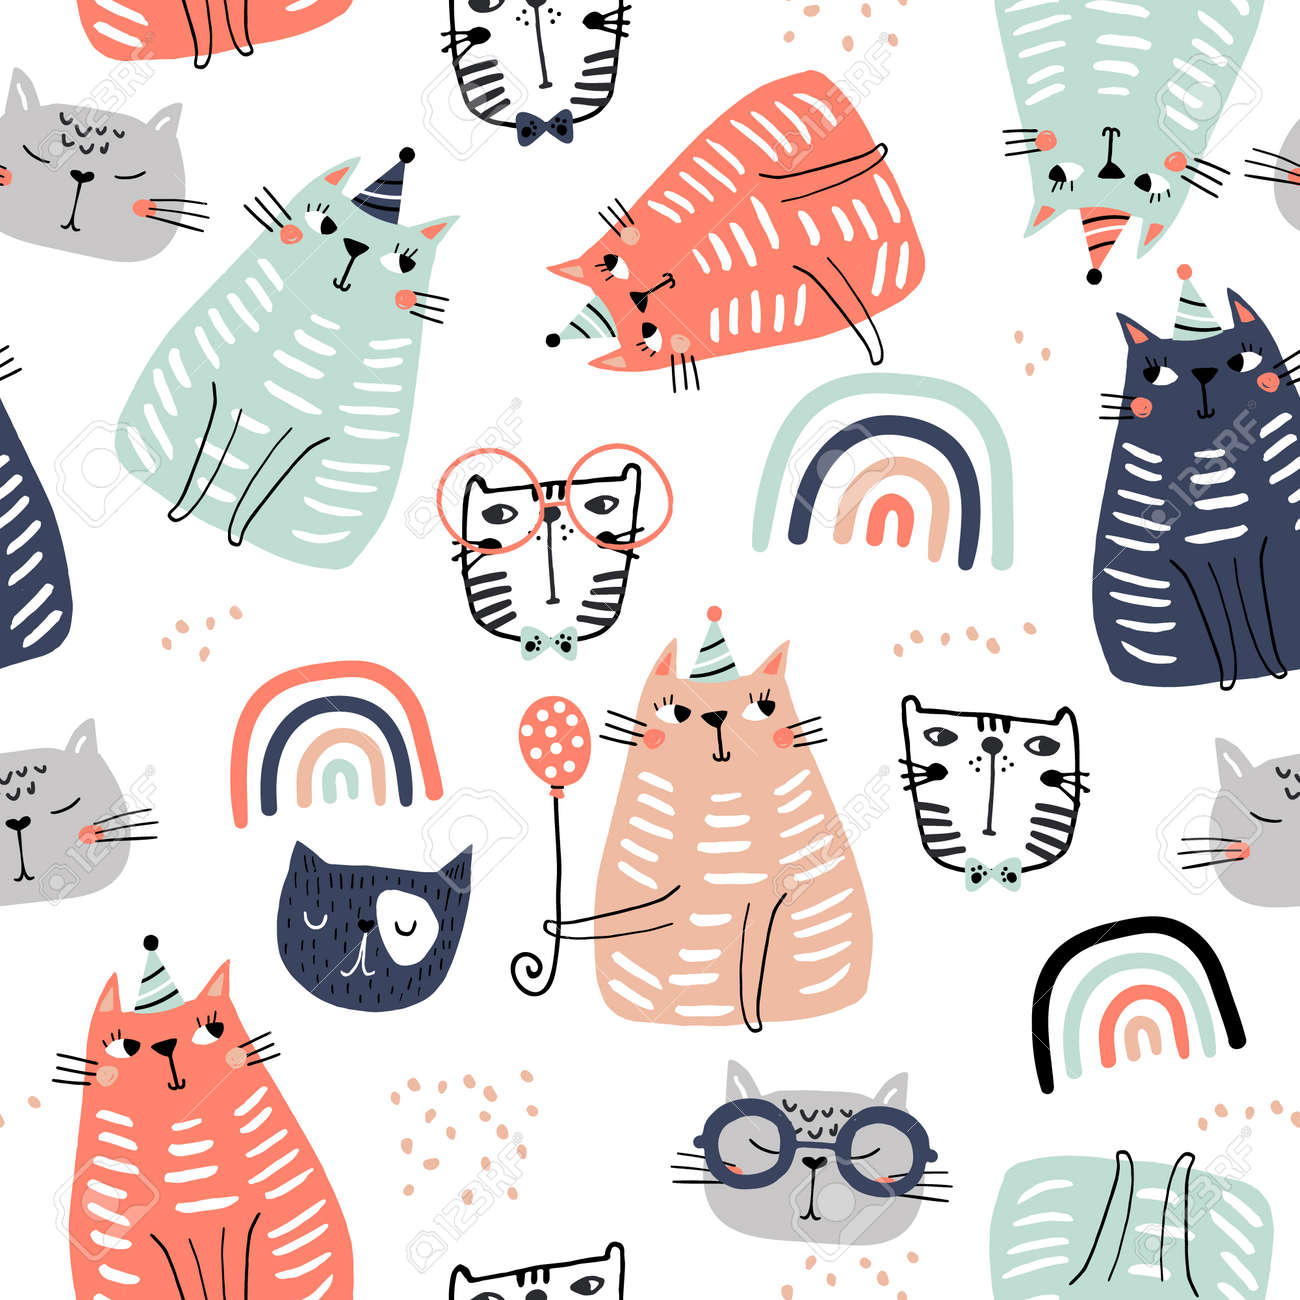 Seamless childish pattern with funny colorful cats and ranbows . Creative scandinavian kids texture for fabric, wrapping, textile, wallpaper, apparel. Vector illustration - 124935839